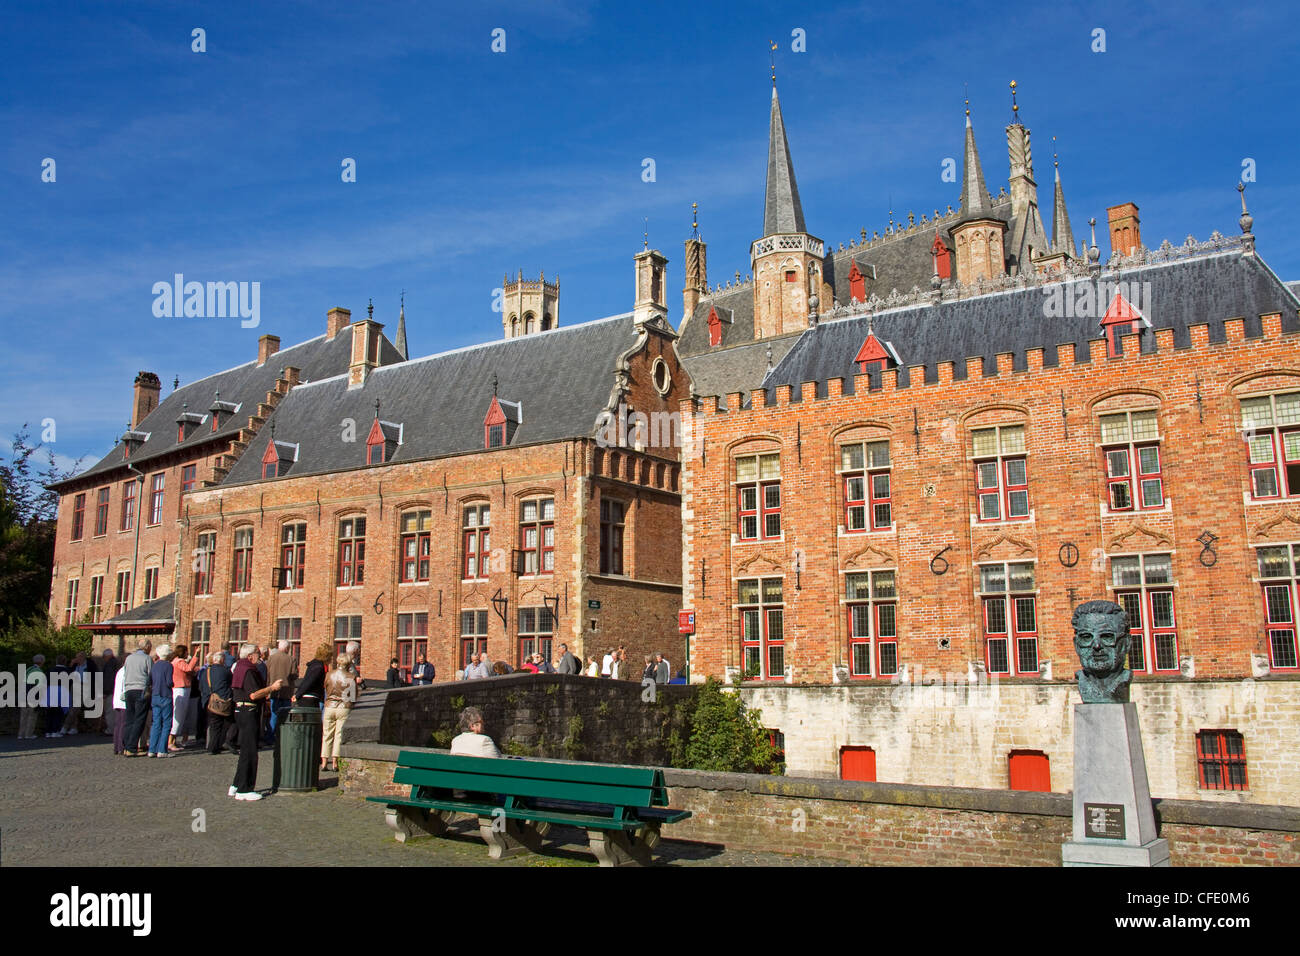 burg museum stock photos burg museum stock images alamy. Black Bedroom Furniture Sets. Home Design Ideas